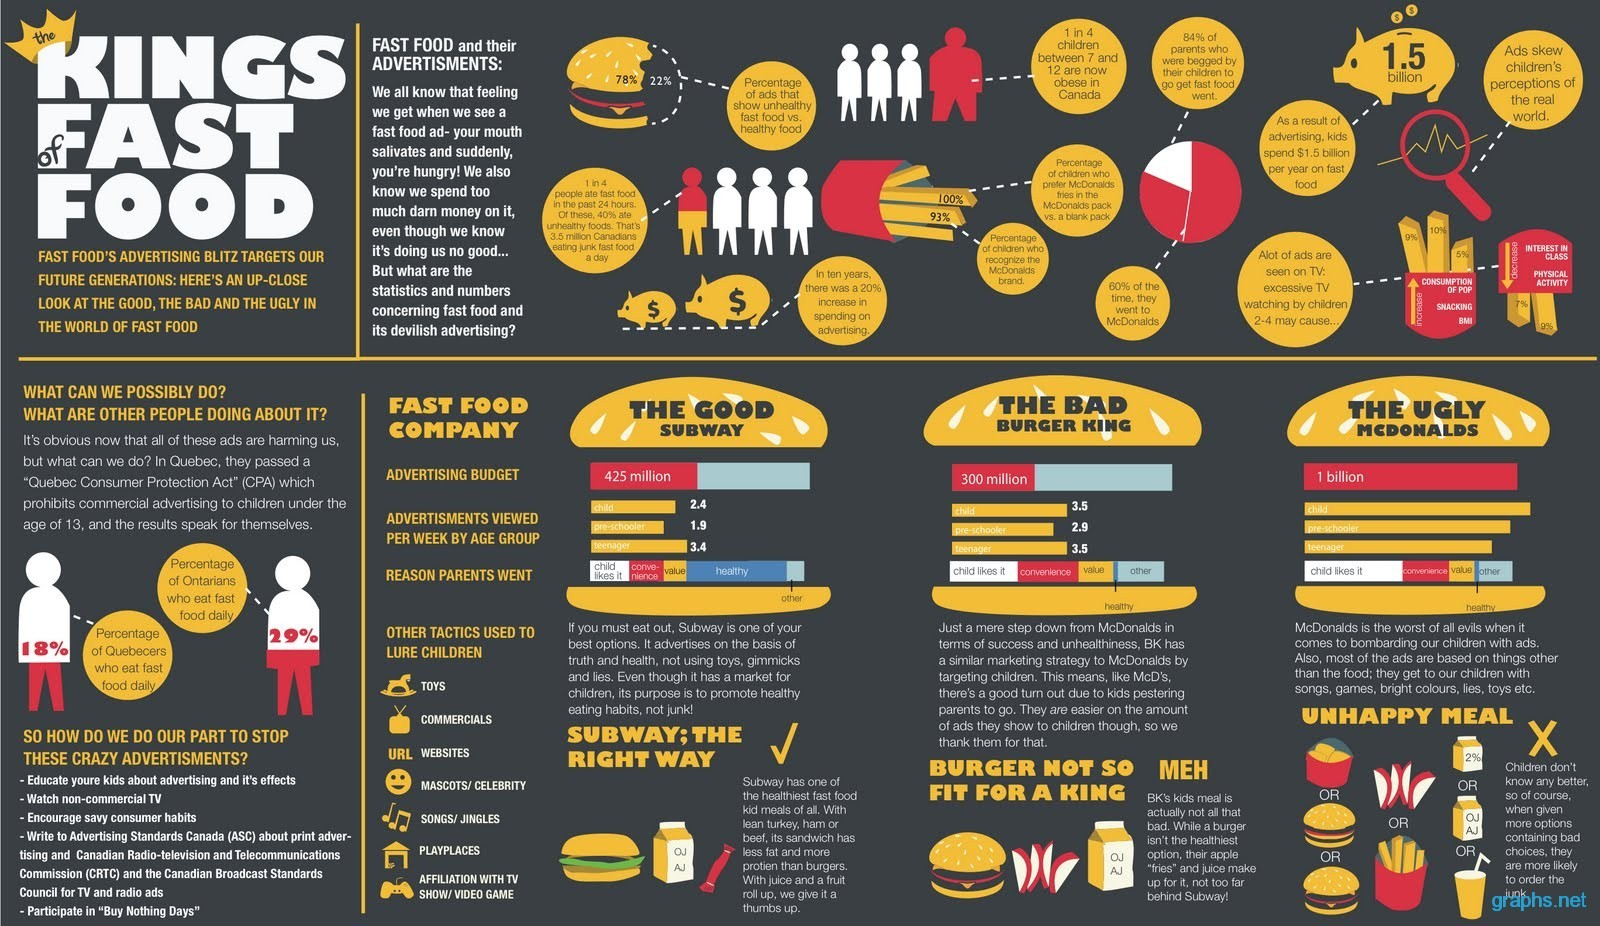 Obesity Due To Fast Food Advertising